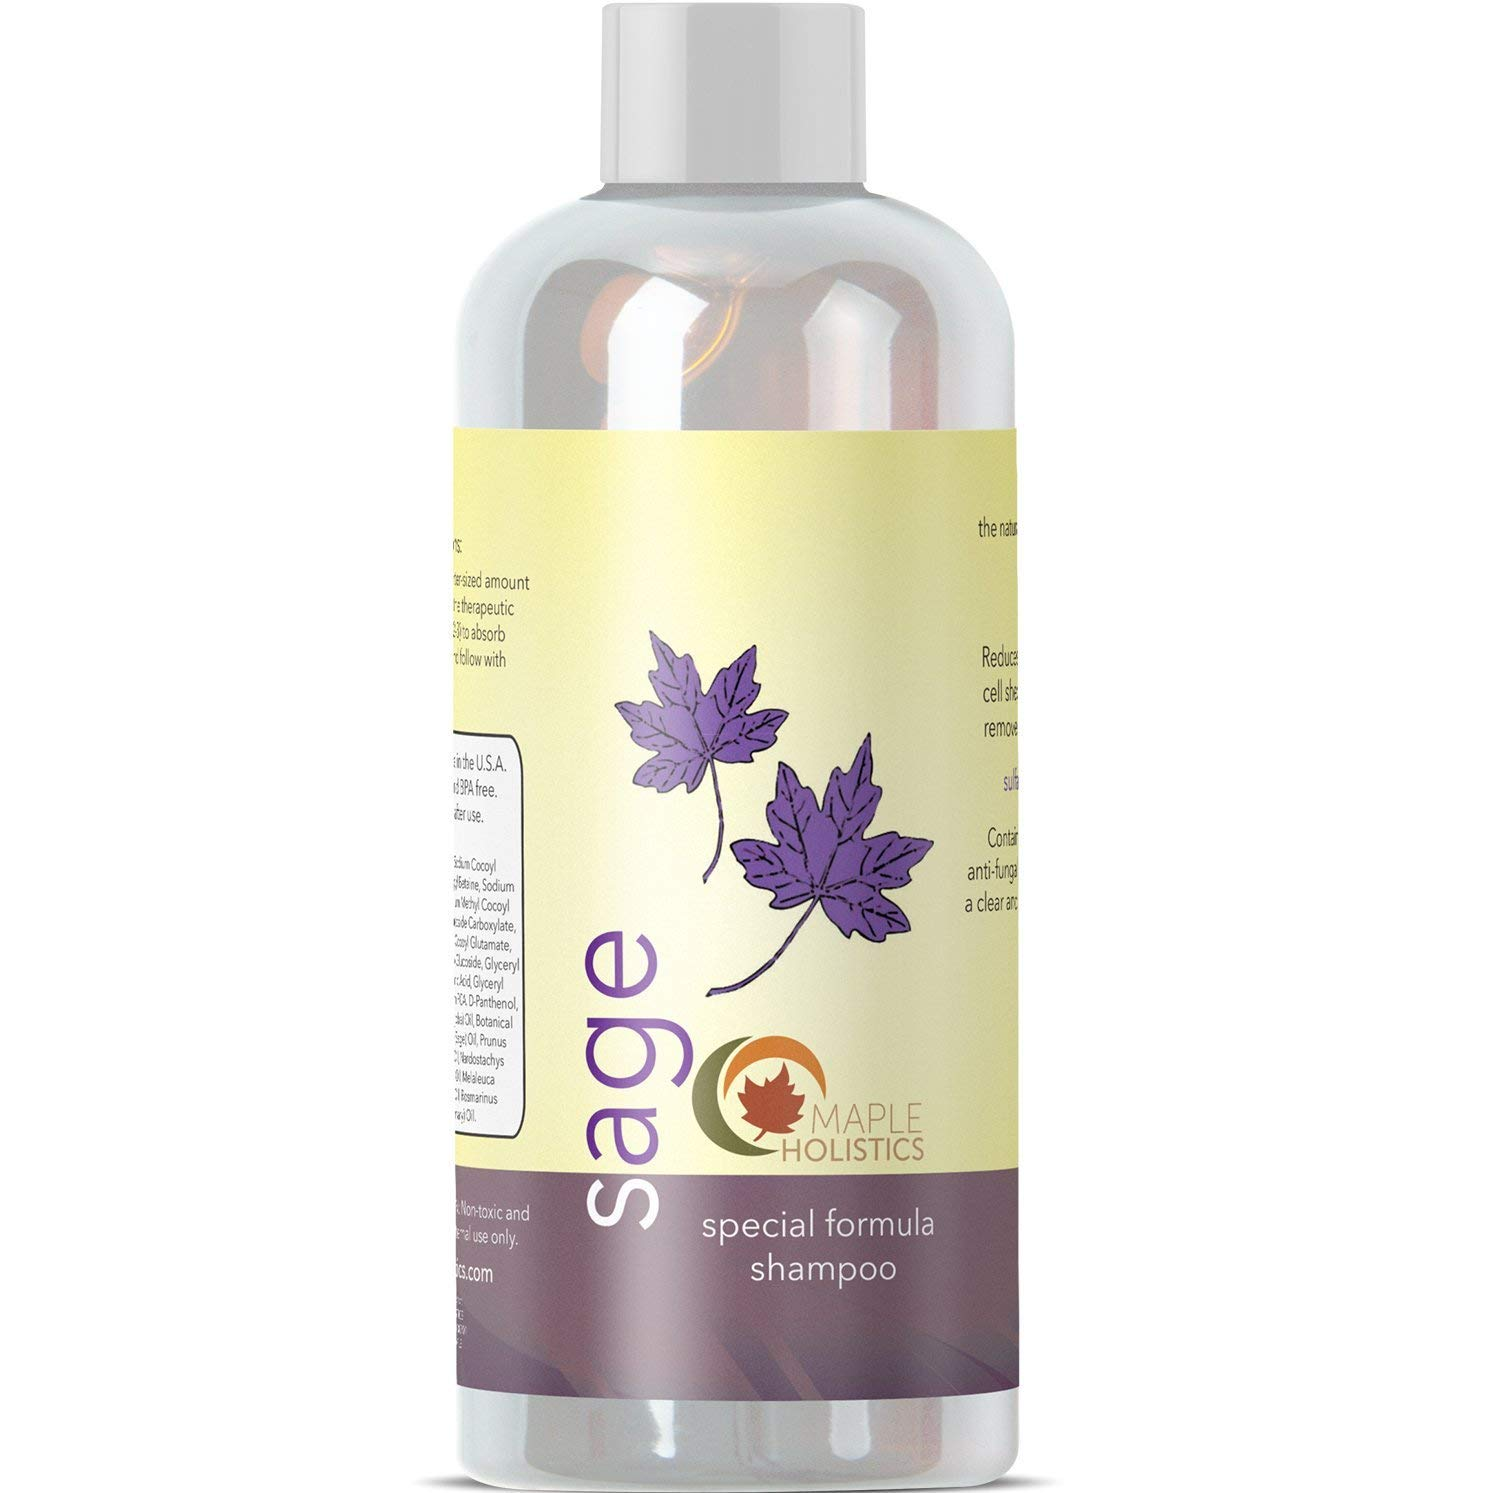 Natural Sage Shampoo for Dandruff and Dry Scalp Sulfate Free Anti Dandruff Itchy Flaky Scalp Antifungal Tea Tree Oil Rosemary Jojoba and Argan Oil for Thicker Hair Growth for Women and Men by Maple Holistics